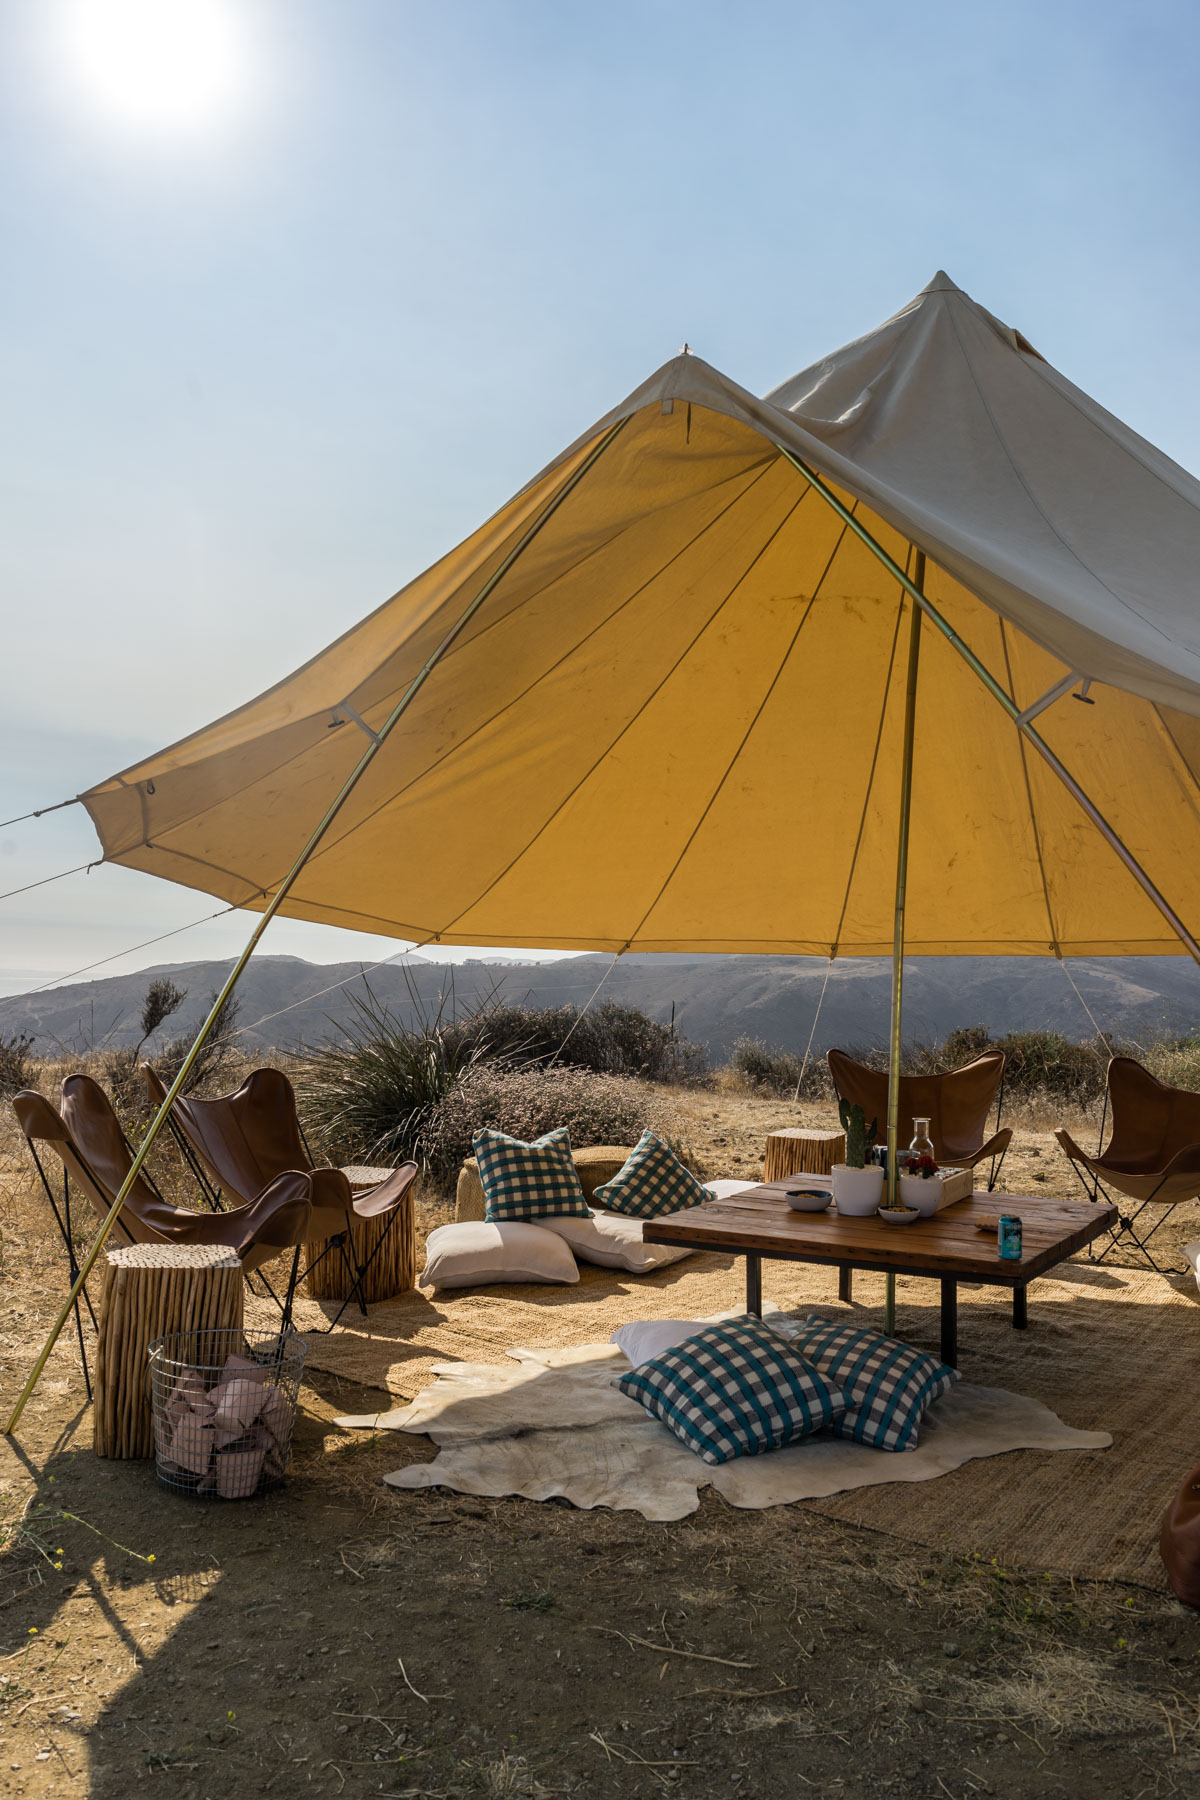 Want to pitch a tent? Be my guest.